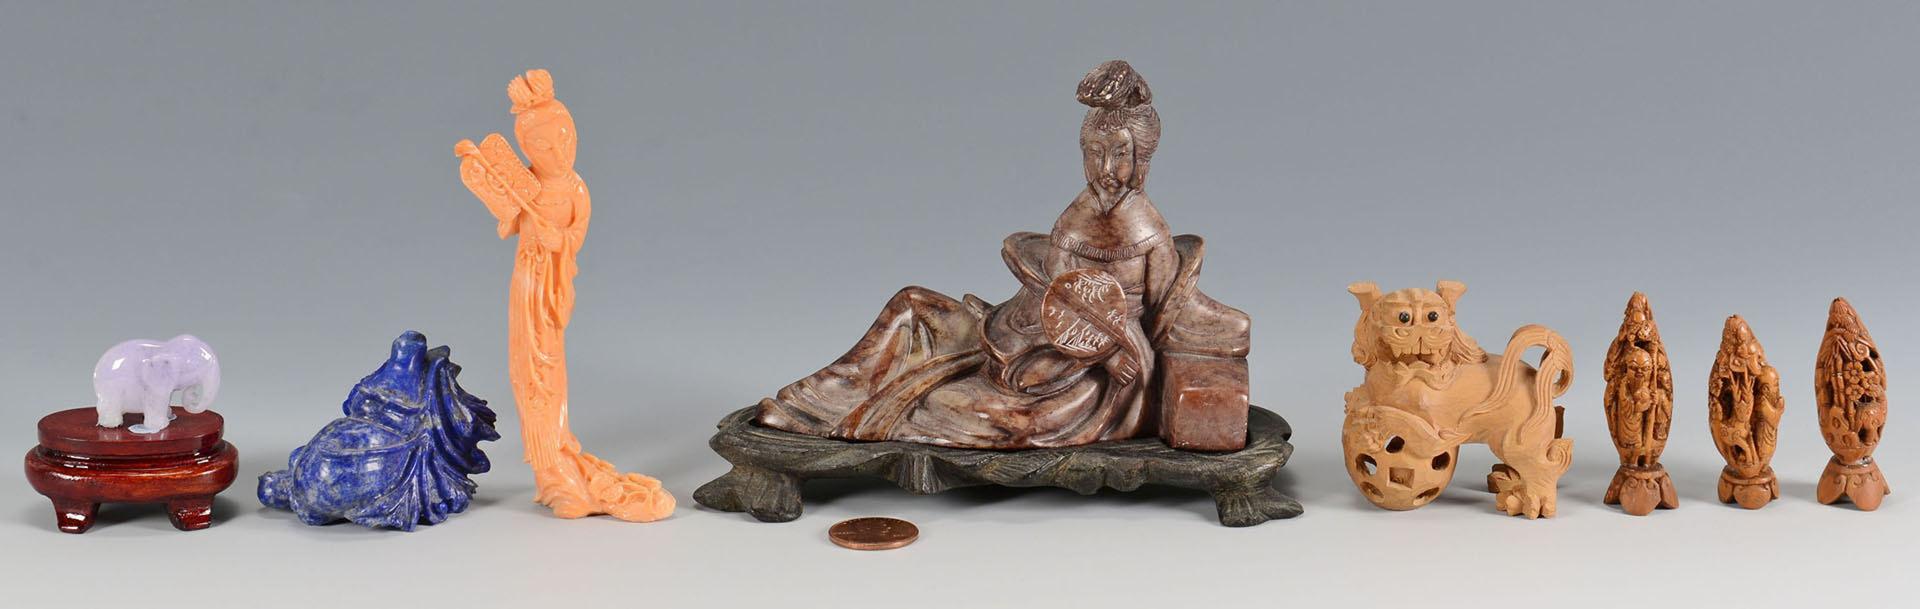 Lot 219: 8 Asian Figural Carvings inc. coral